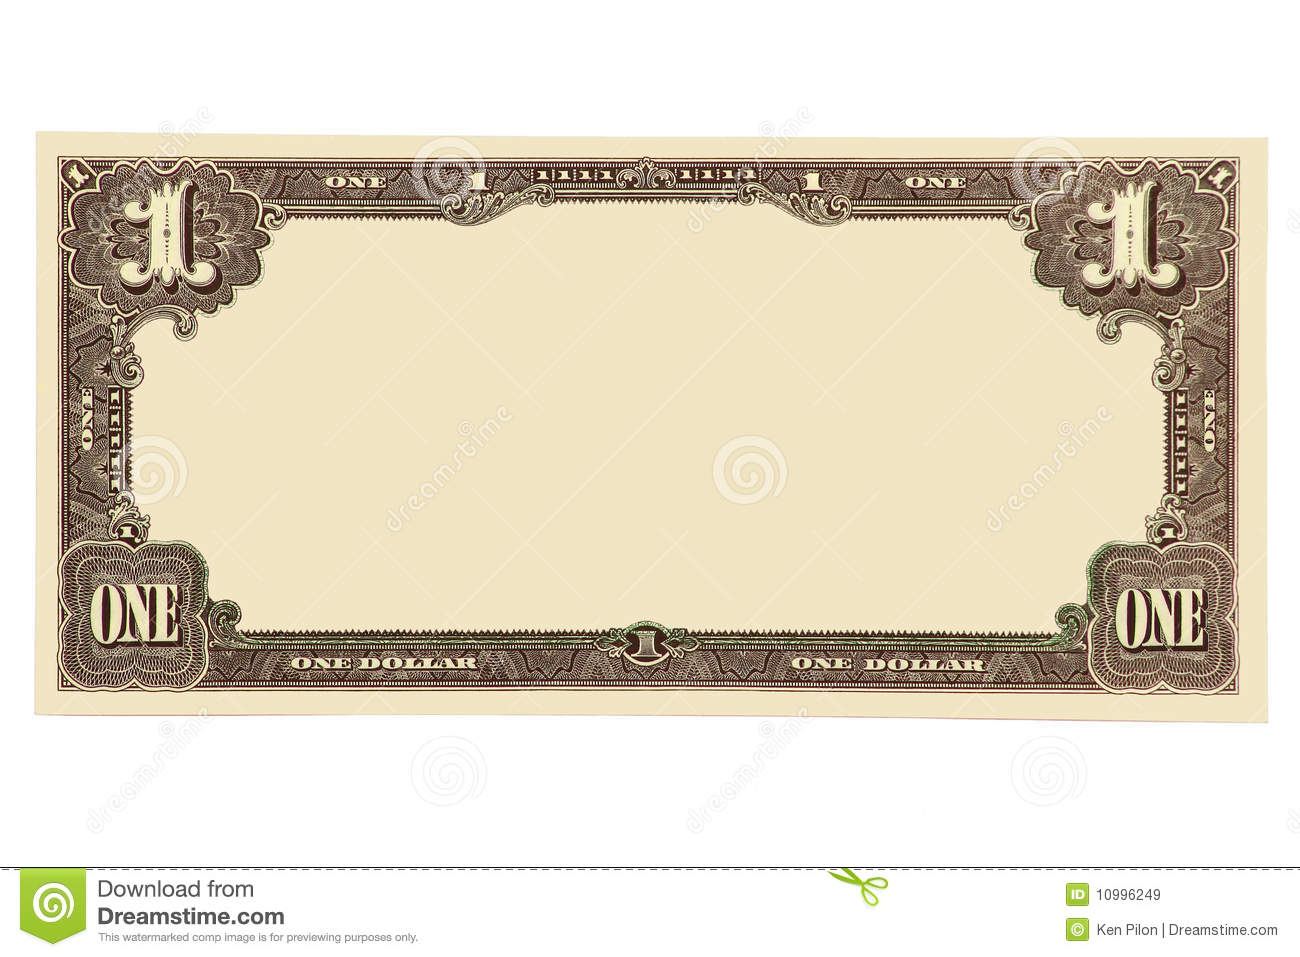 Blank banknote stock images 1275 photos blank banknote pronofoot35fo Choice Image